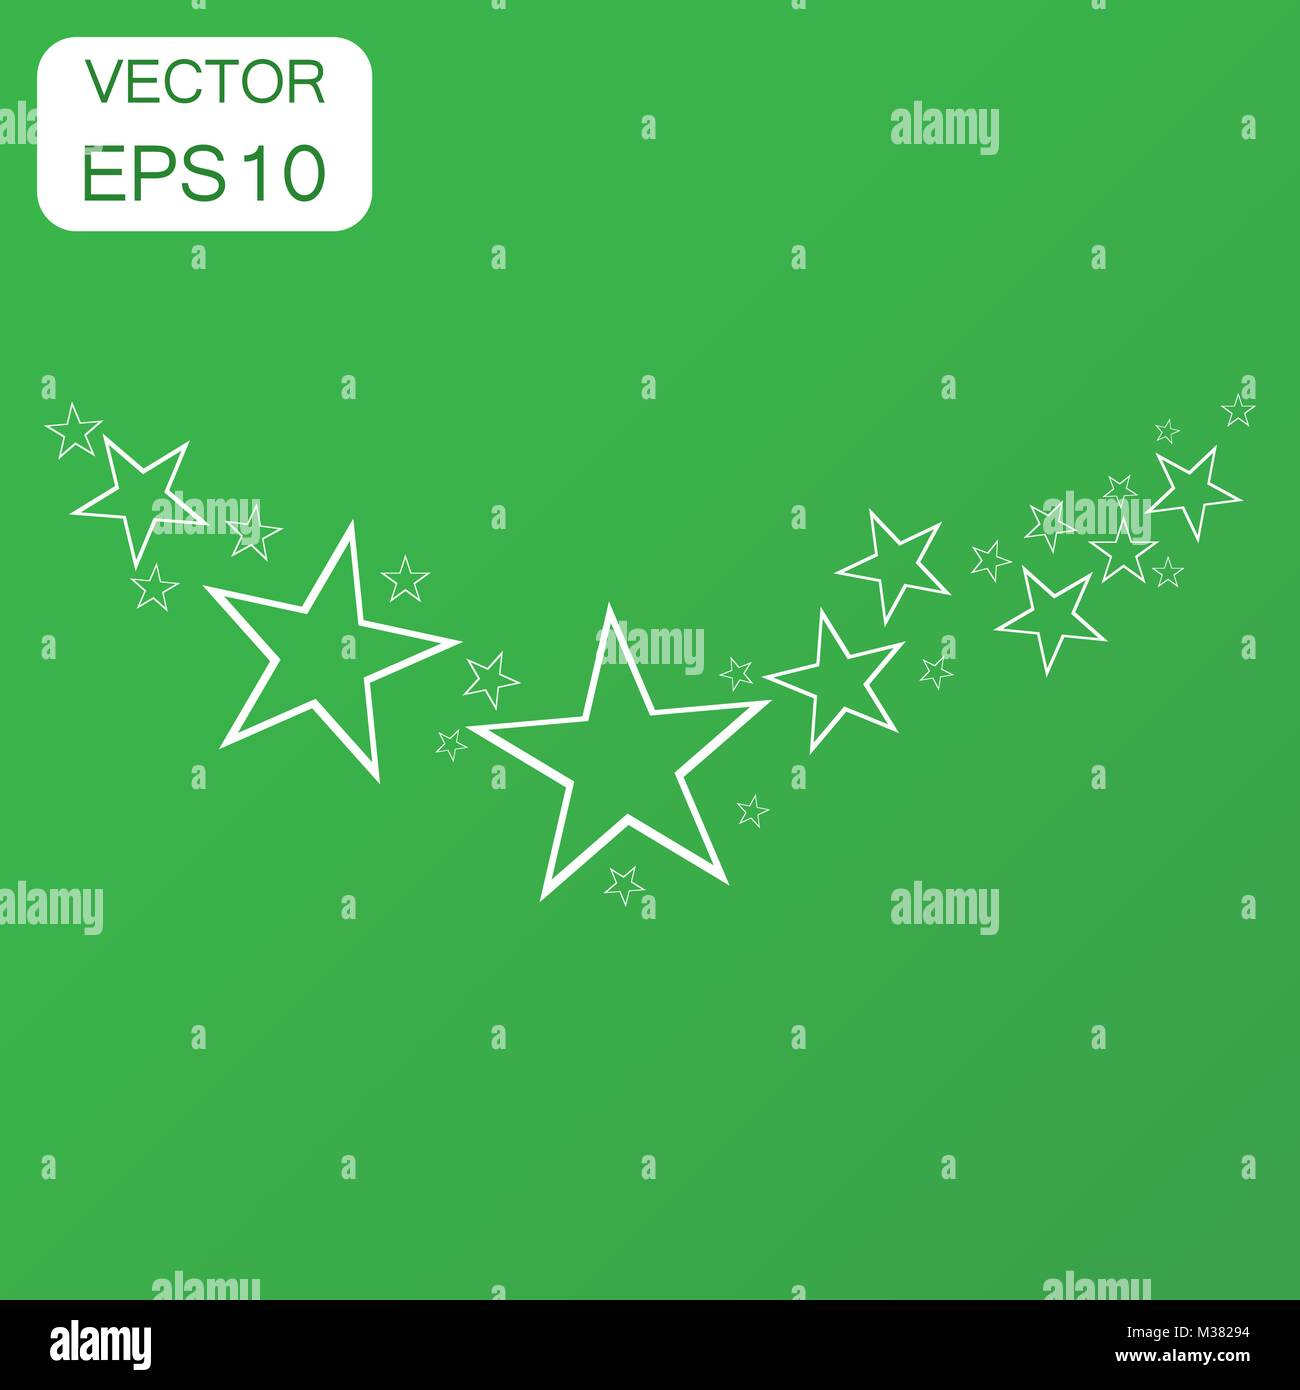 Abstract falling star icon. Business concept stars pictogram. Vector illustration on green background with long Stock Vector